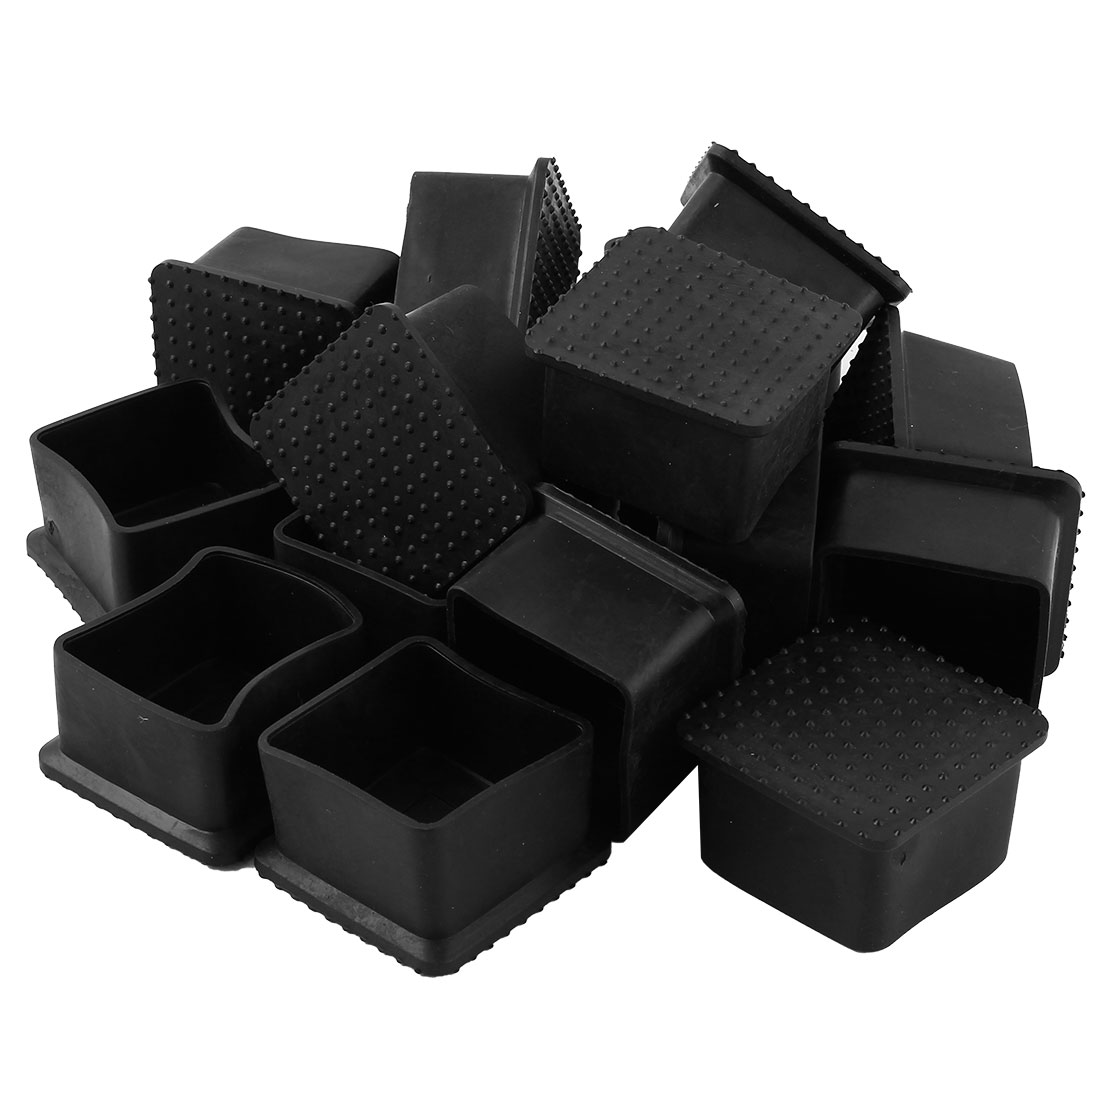 Office Rubber Furniture Table Foot Dirt Protector Cover Black 40mm x 40mm 17 Pcs